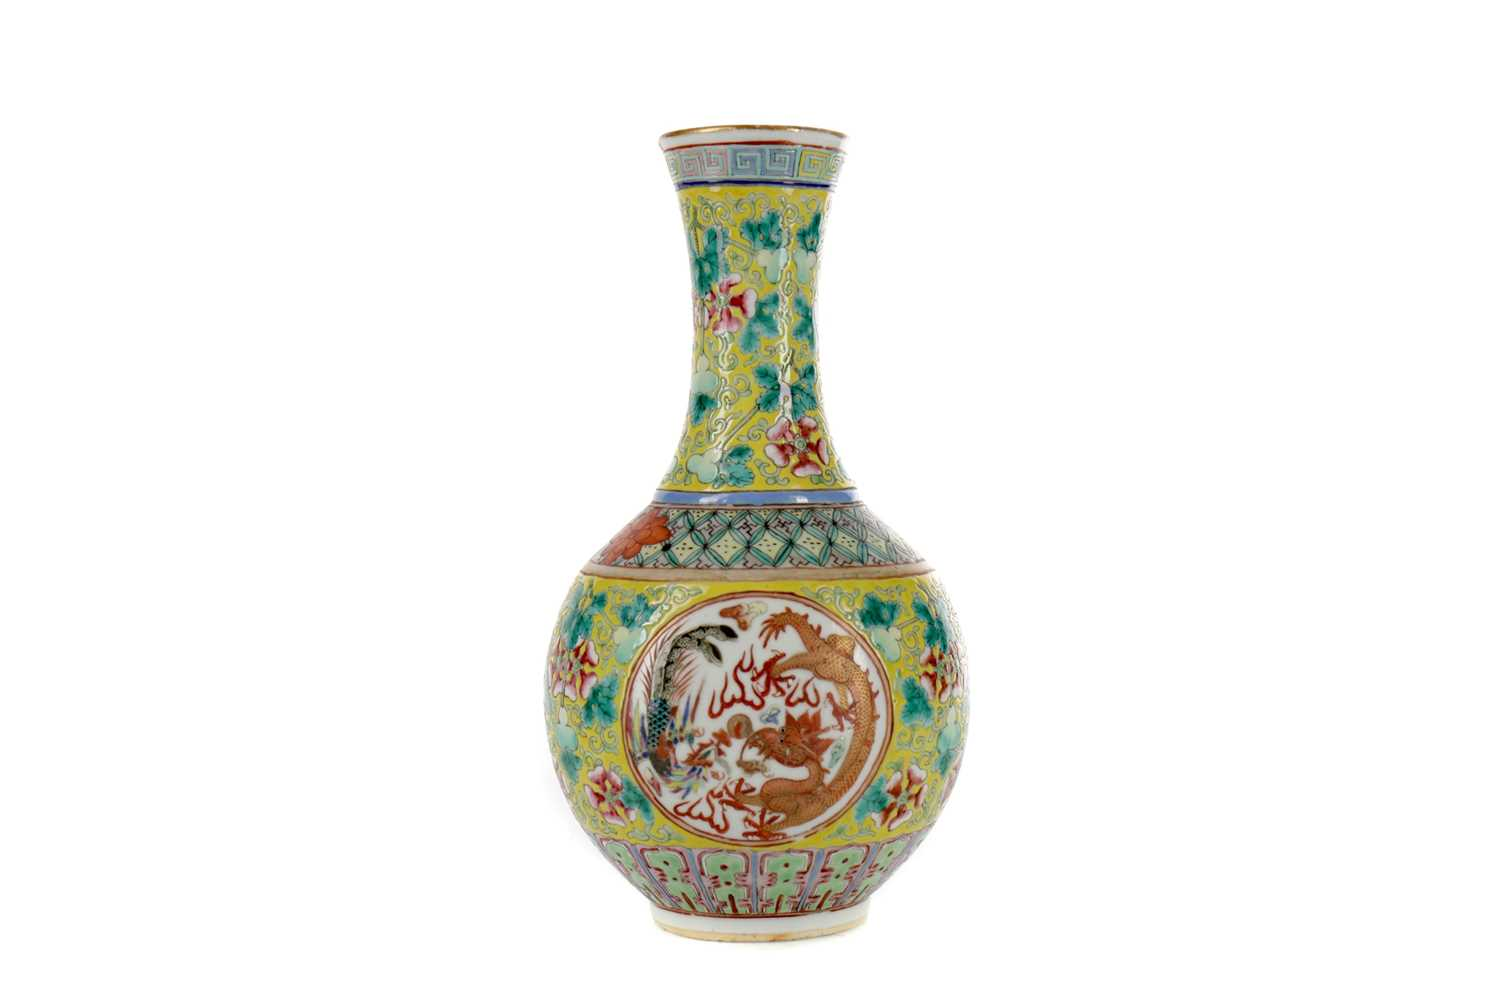 Lot 722 - A 19TH CENTURY CHINESE FAMILLE JAUNE